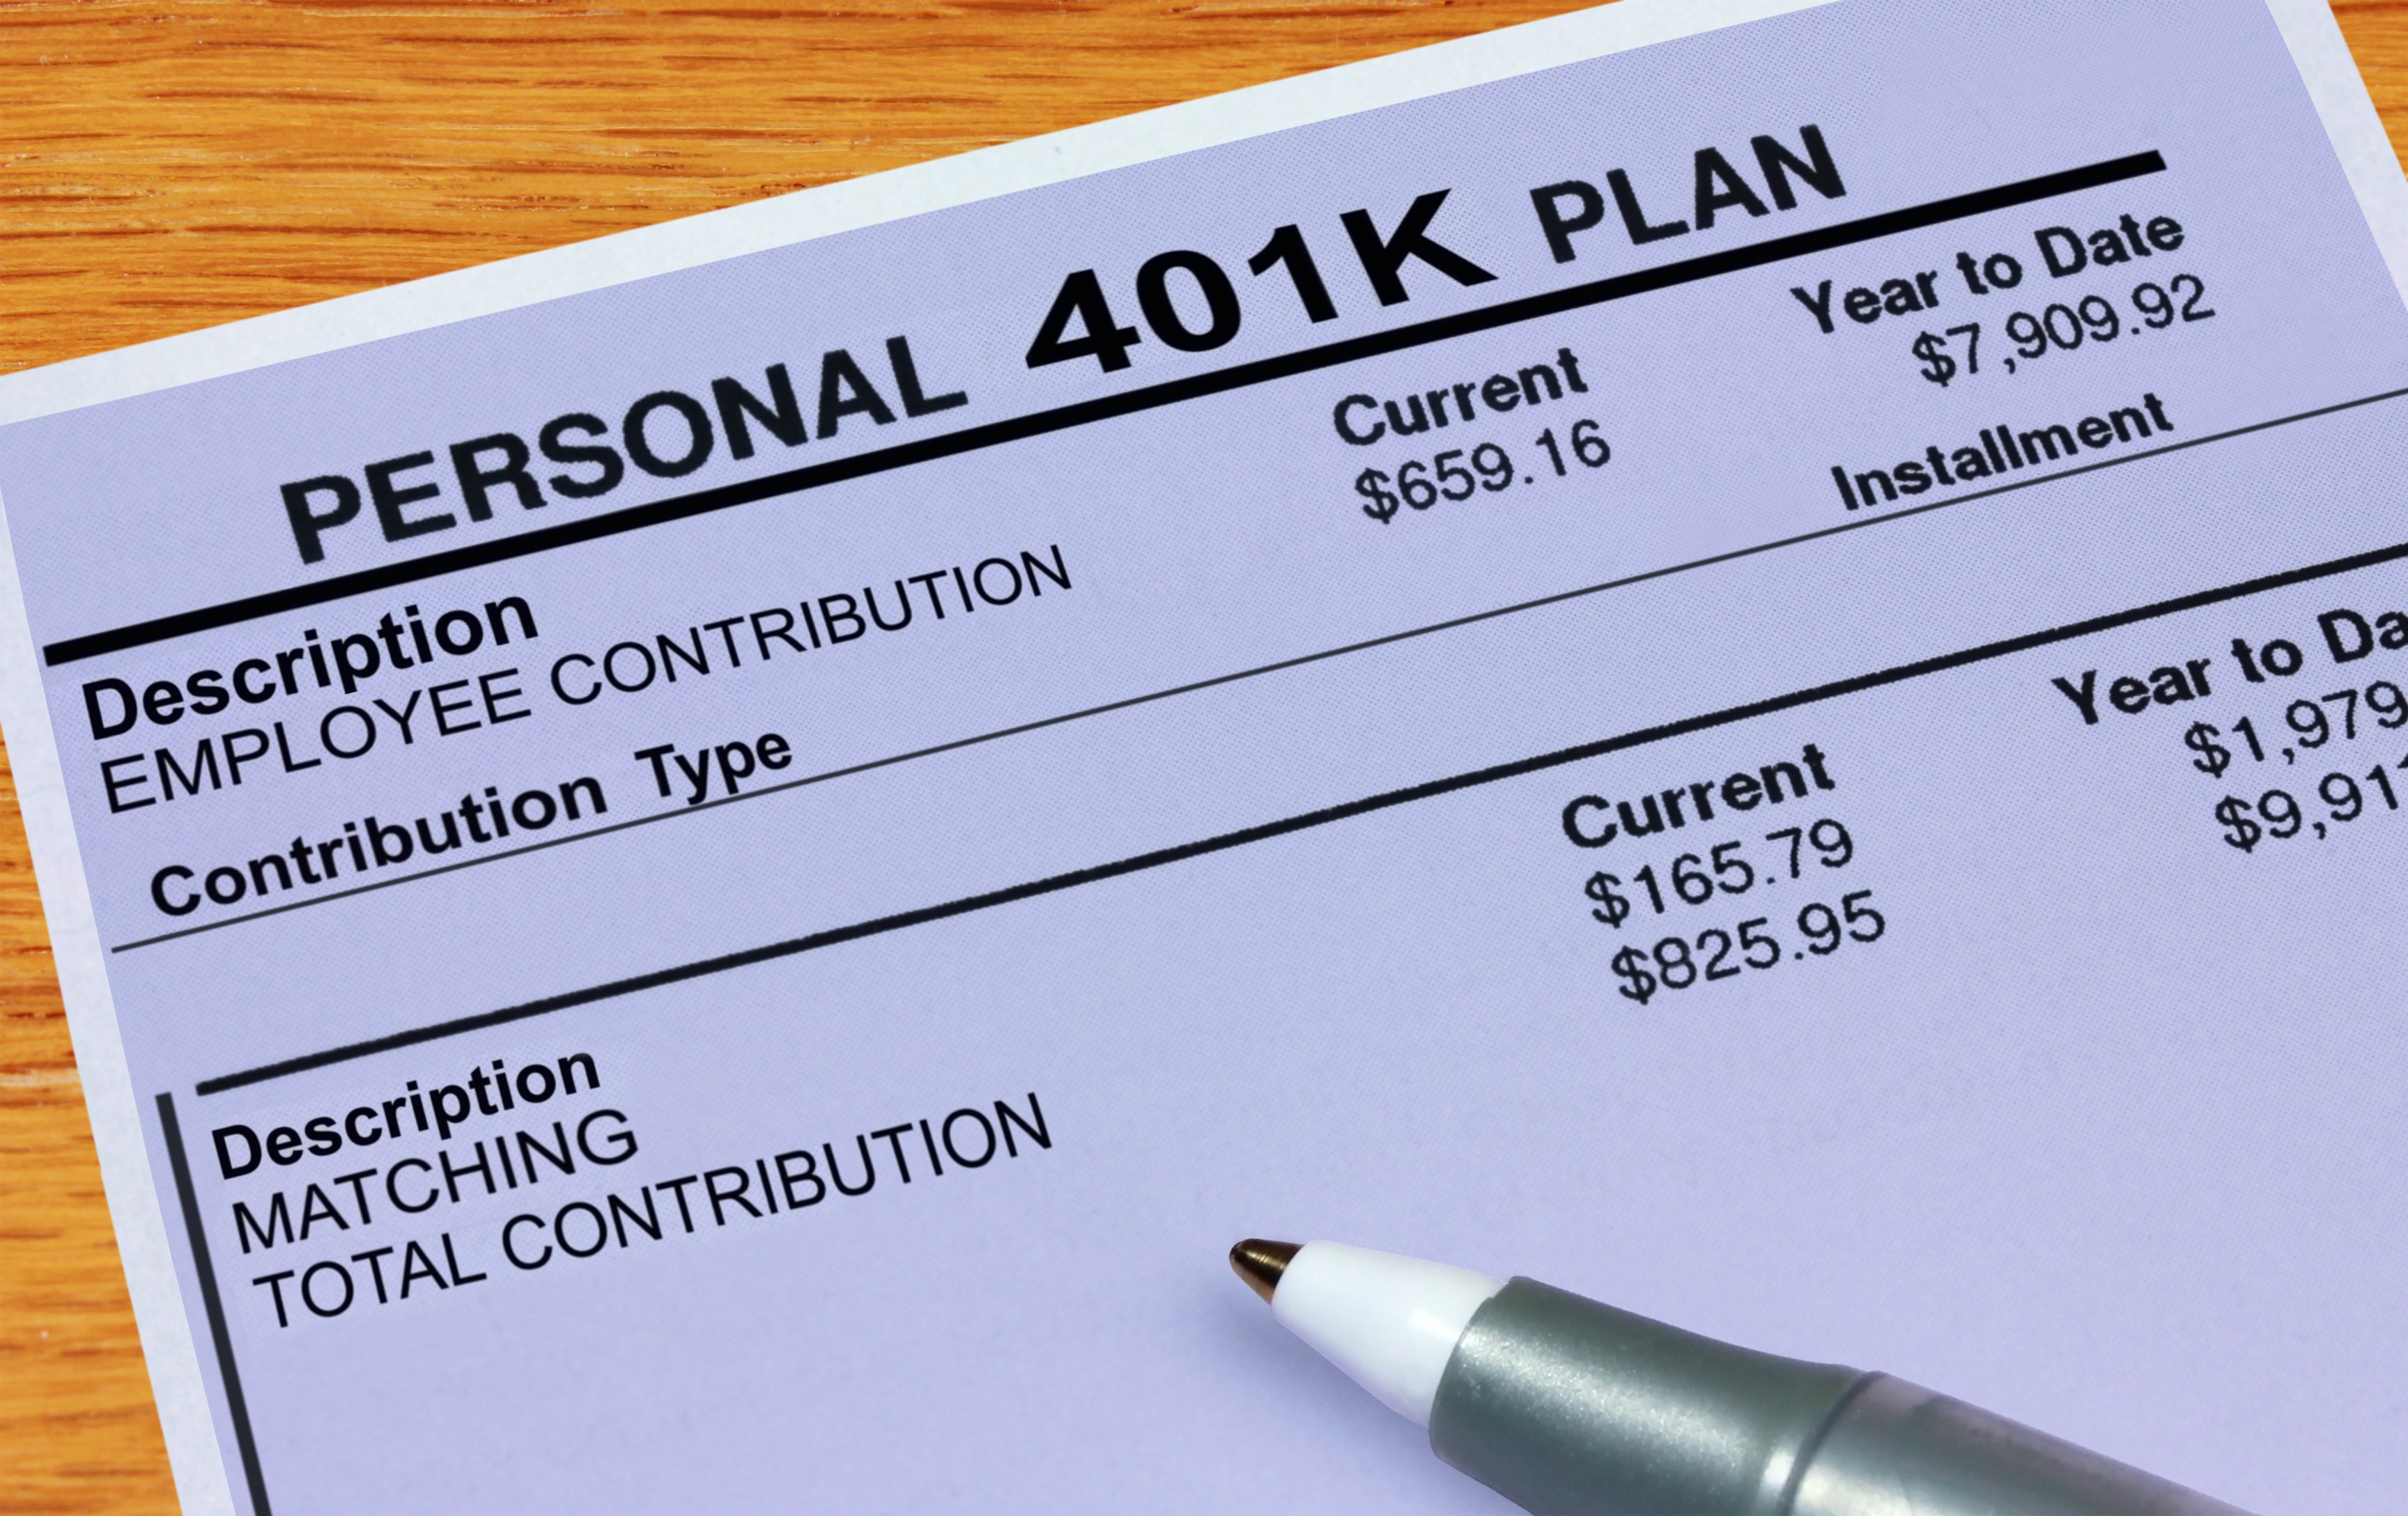 Personal 401K Plan Statement